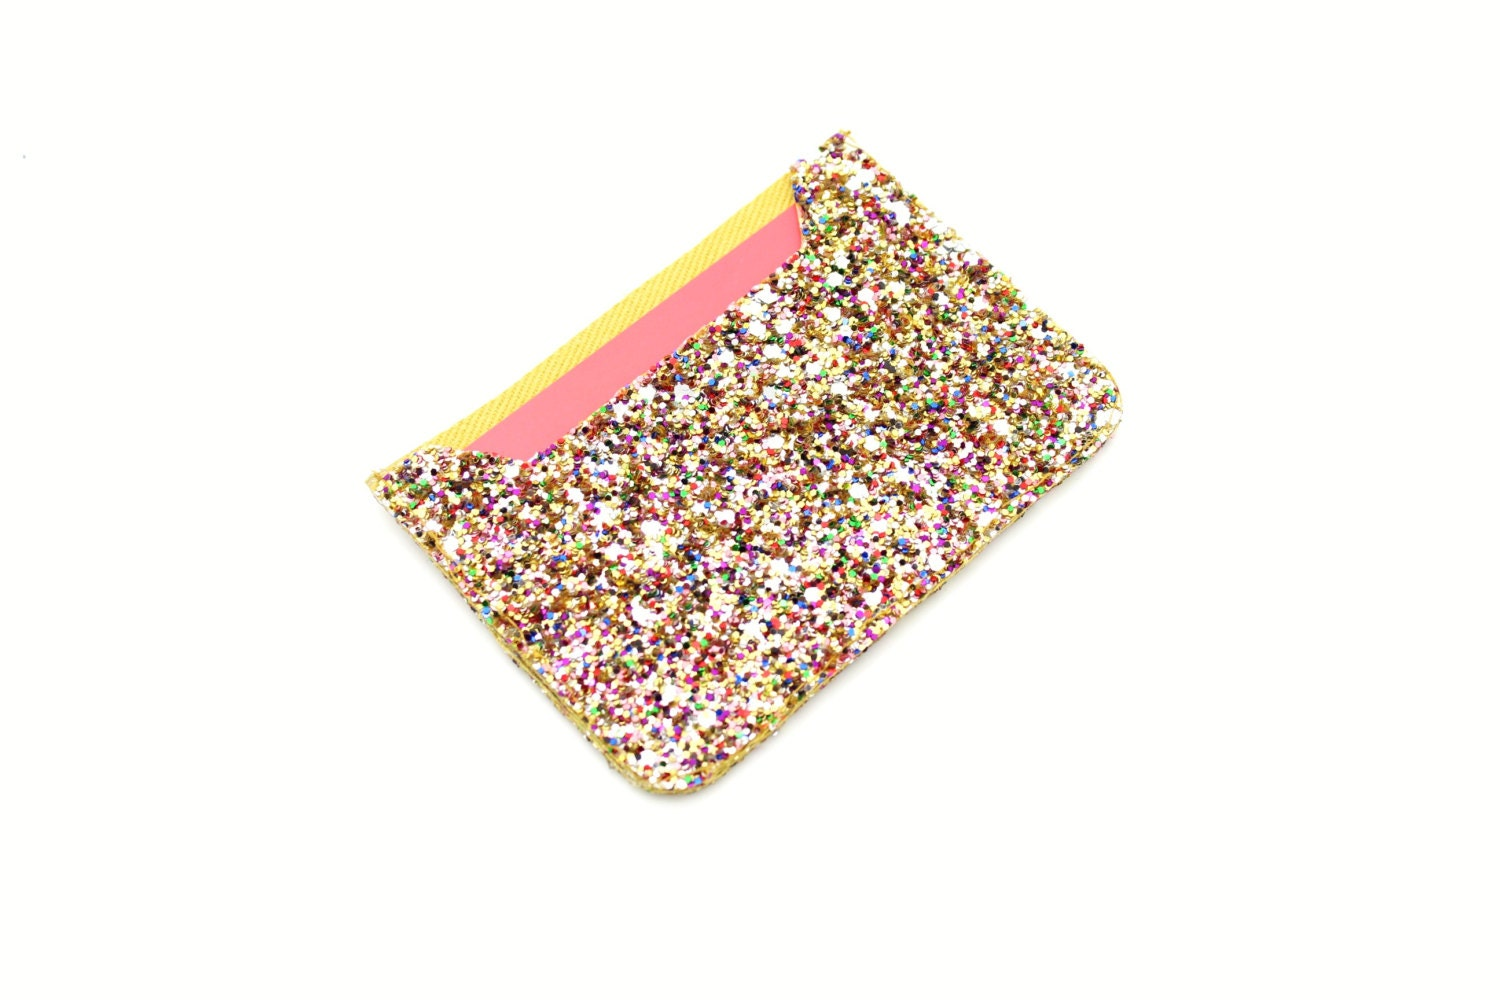 Credit Card Holder Oyster Card Holder Glitter Fabric Travel